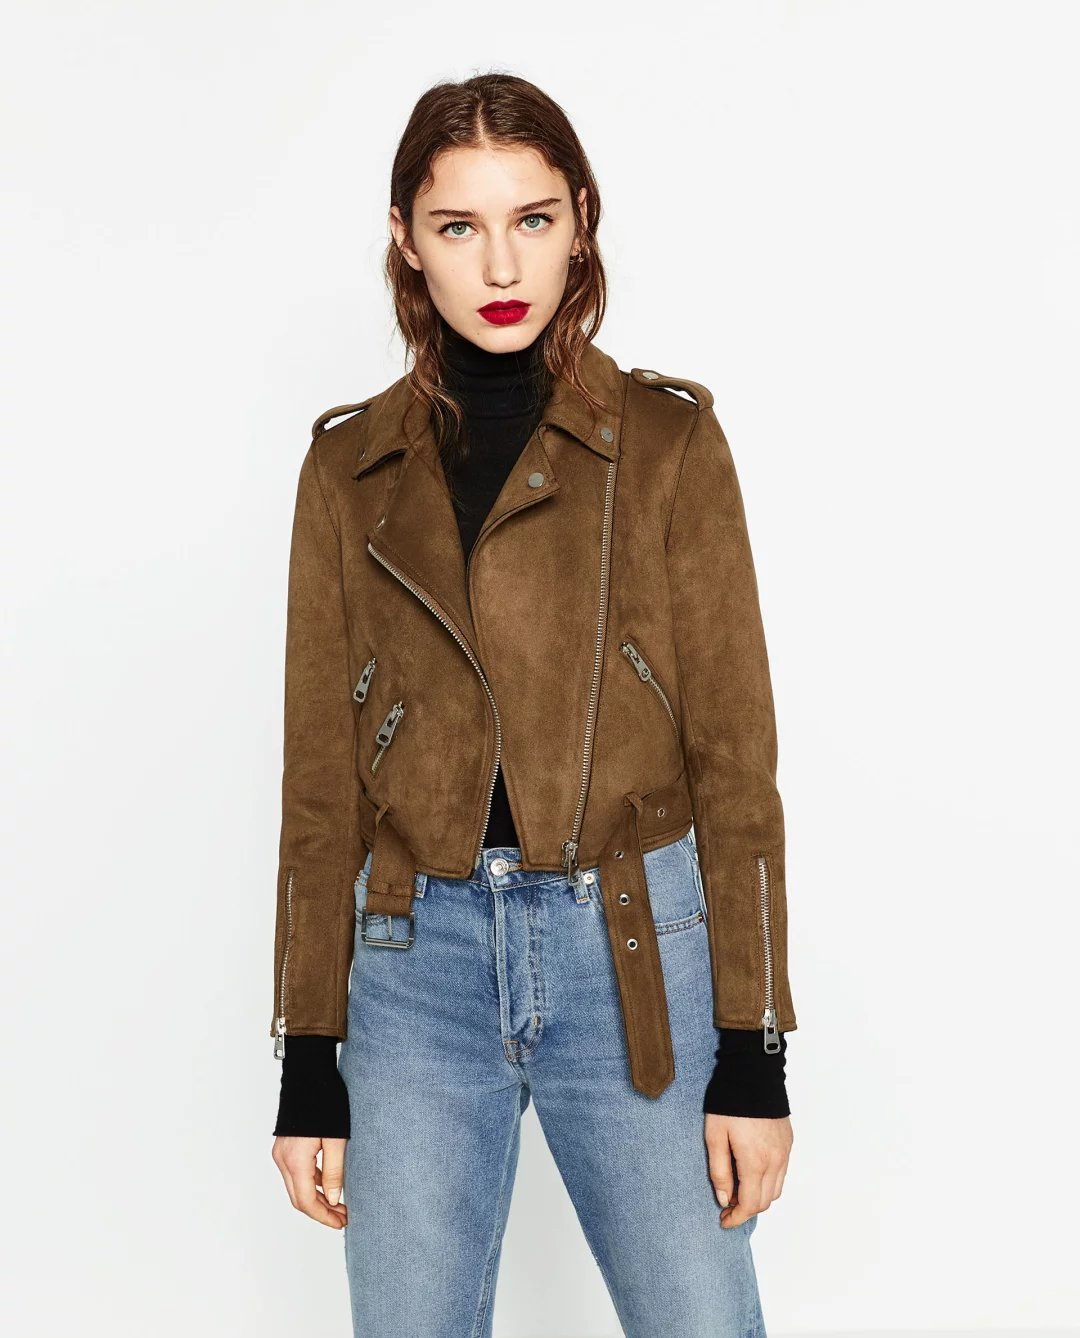 Women Basic Coats 2019 Streetwear Spring Solid Lapel Zippers Sashes   Suede   Motorcycle Fashion Faux   Leather   Jacket XS~L